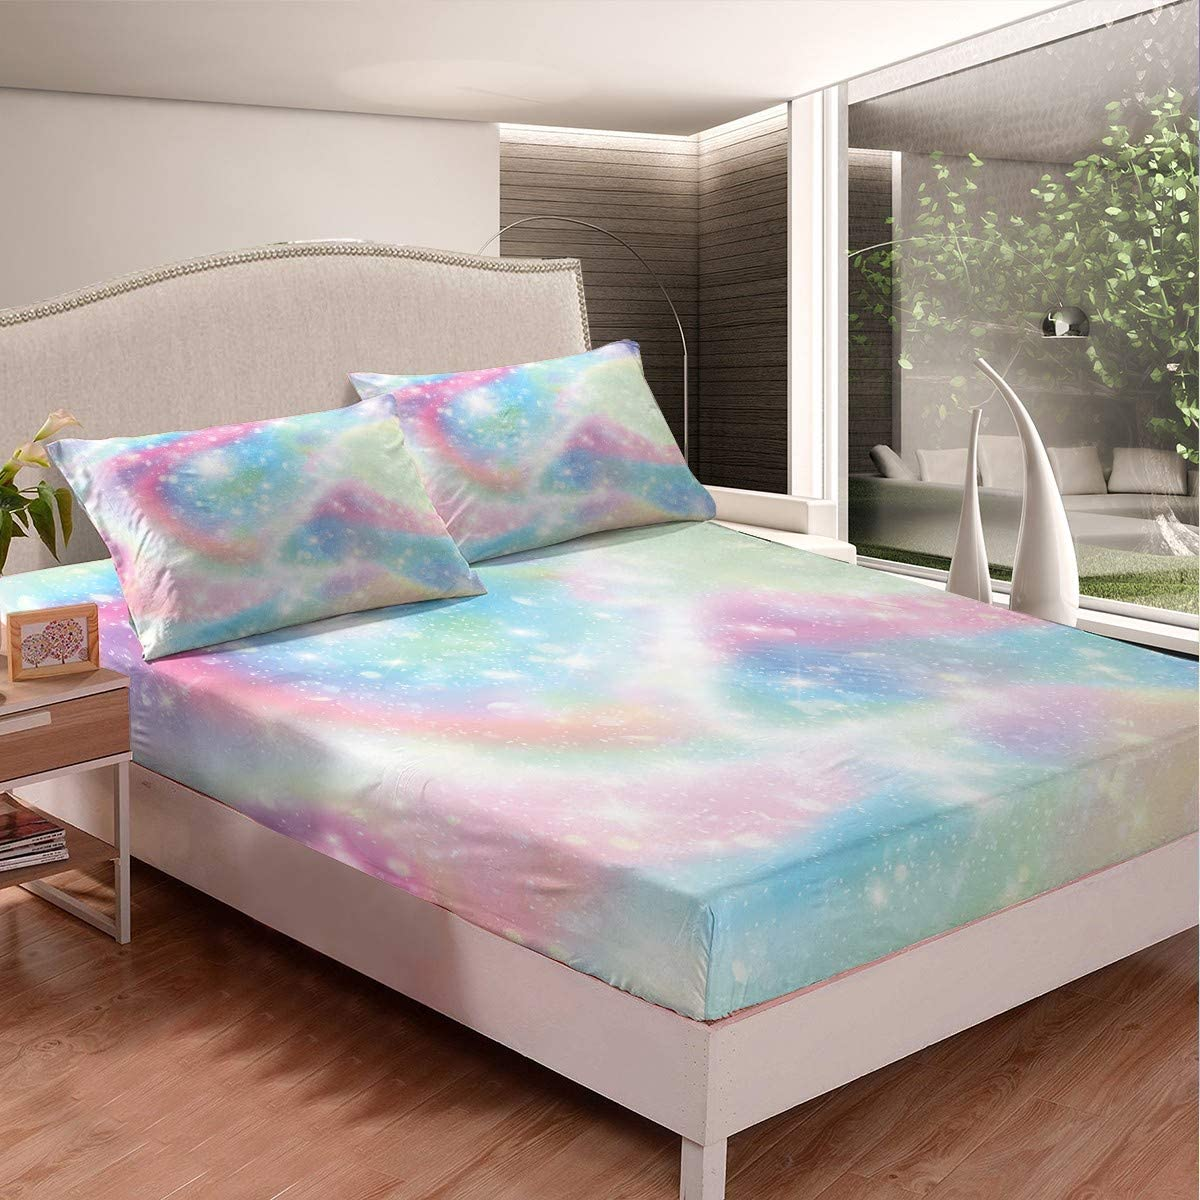 Homewish Galaxy Fitted Sheet Sweet Girls 2 Set Bedding 3pcs Ranking TOP17 Max 48% OFF with